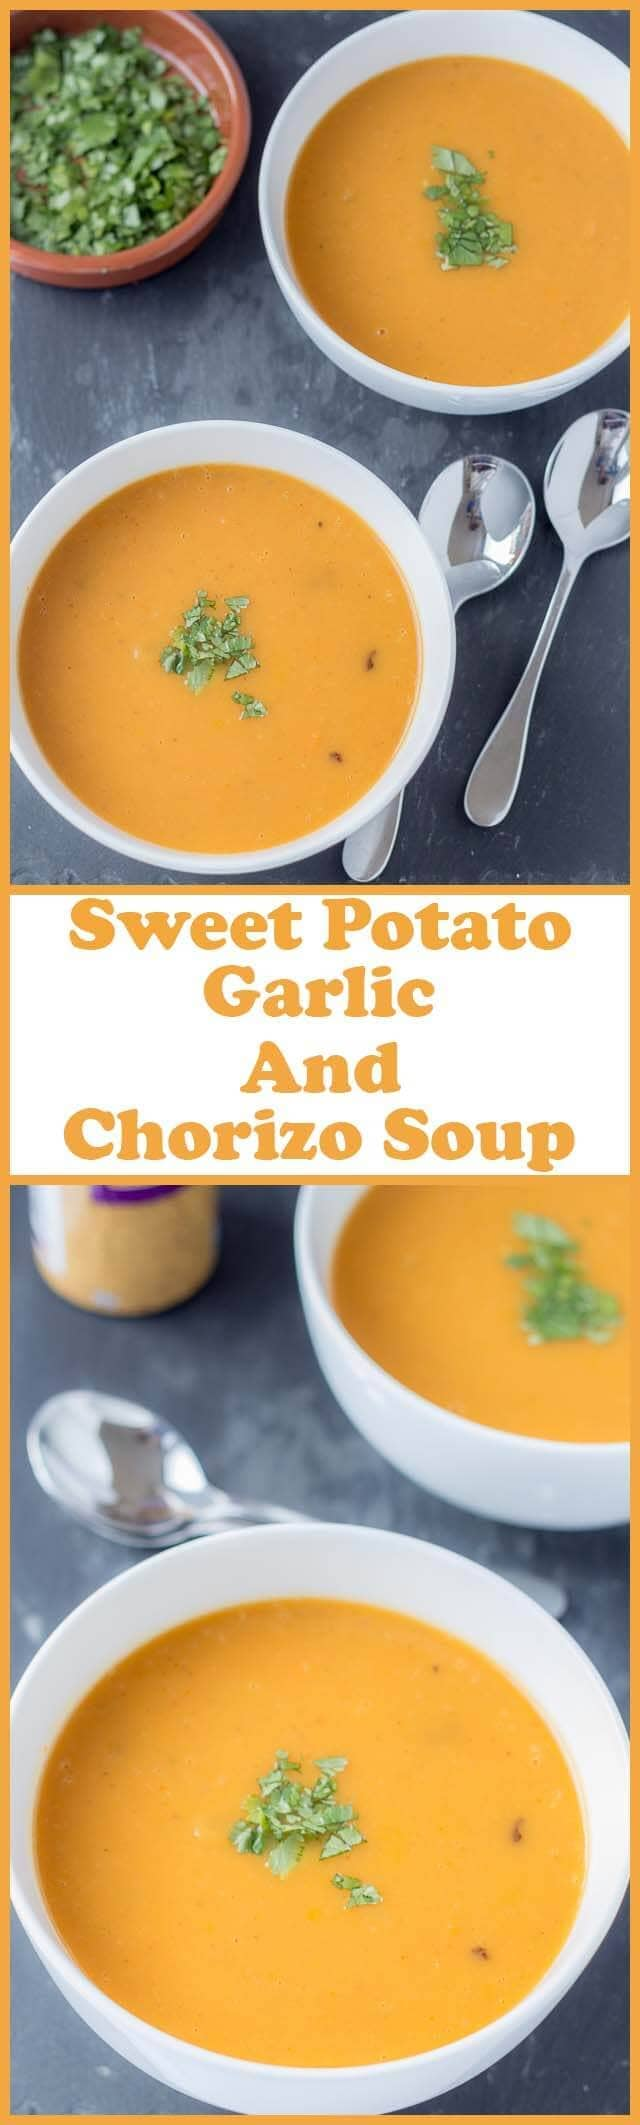 The amazing flavours of this sweet potato garlic and chorizo soup combine to form a deliciously warming winter soup. This low calorie soup is both filling and satisfying too.